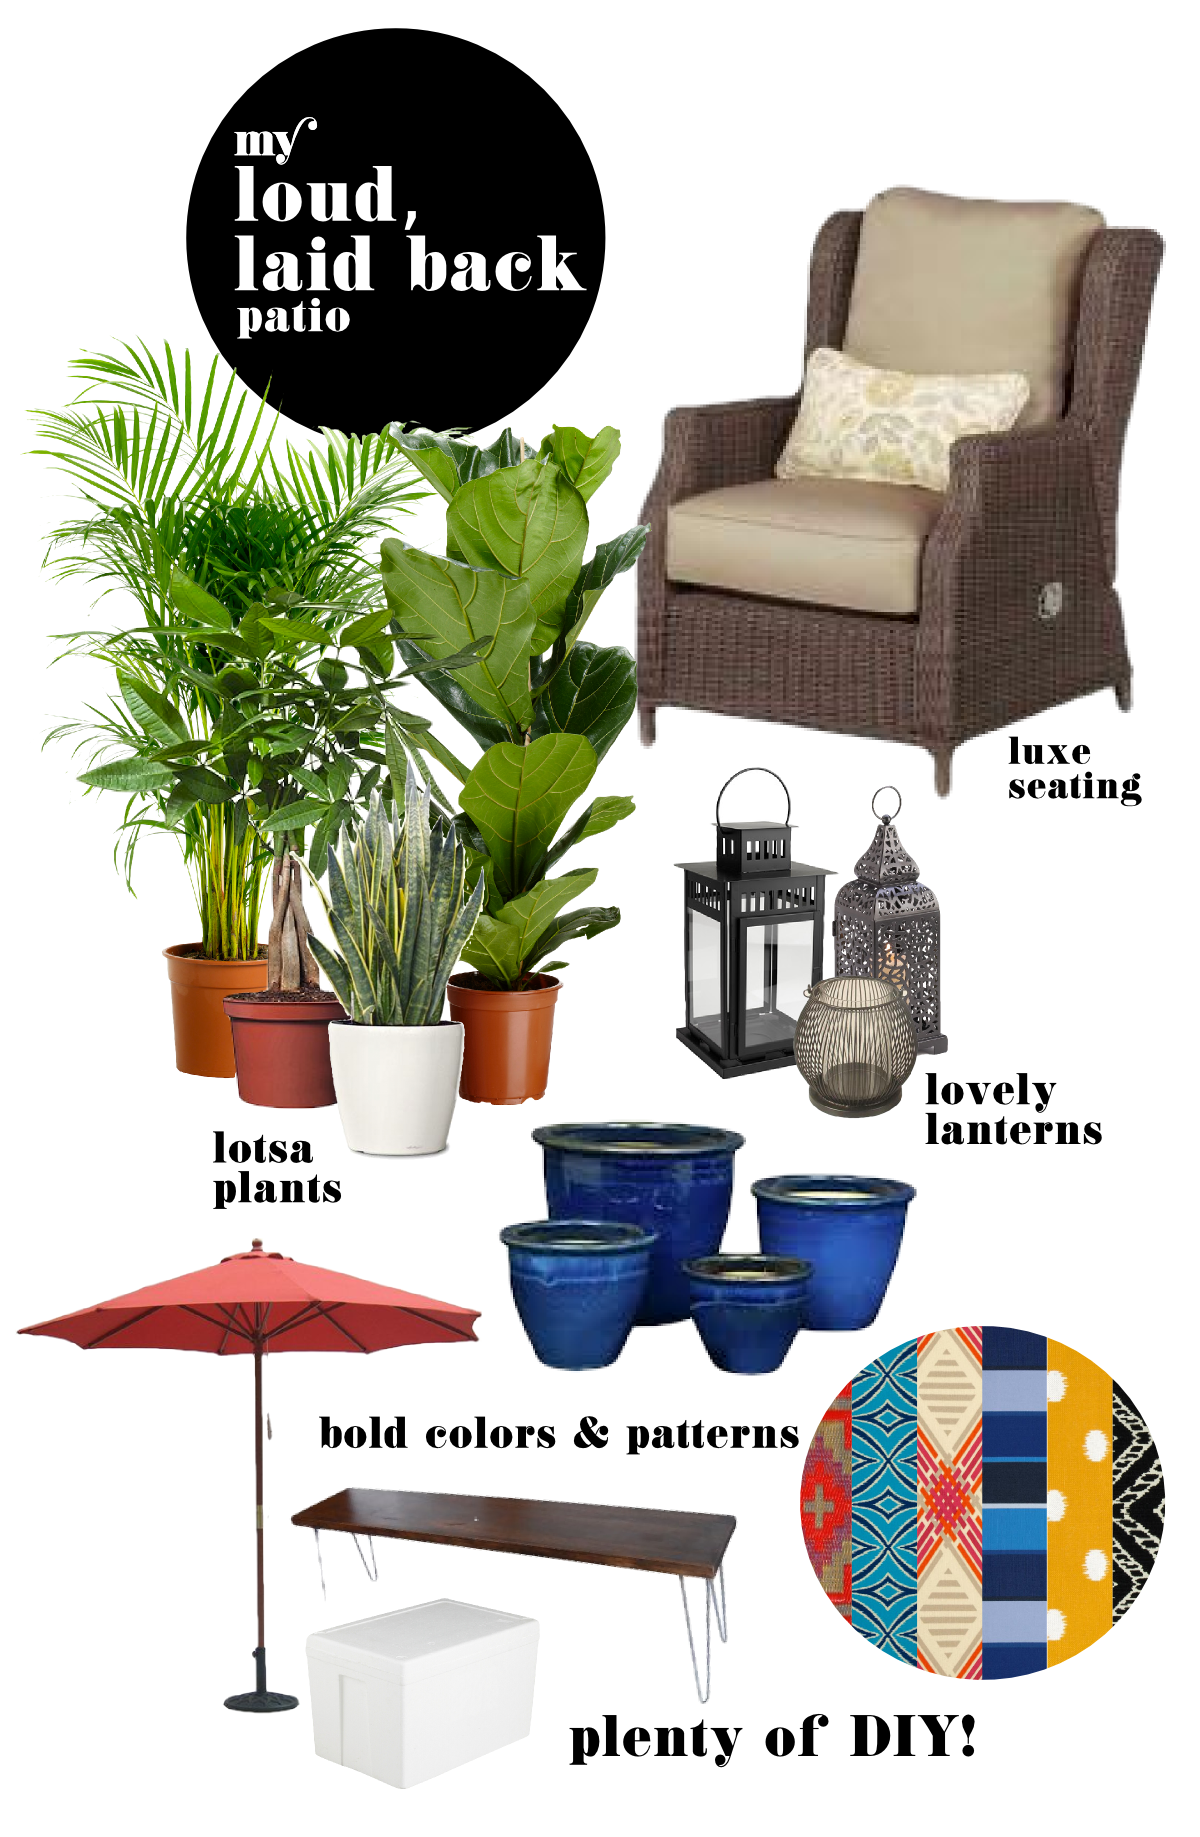 Home Depot Patio Challenge Mood Board